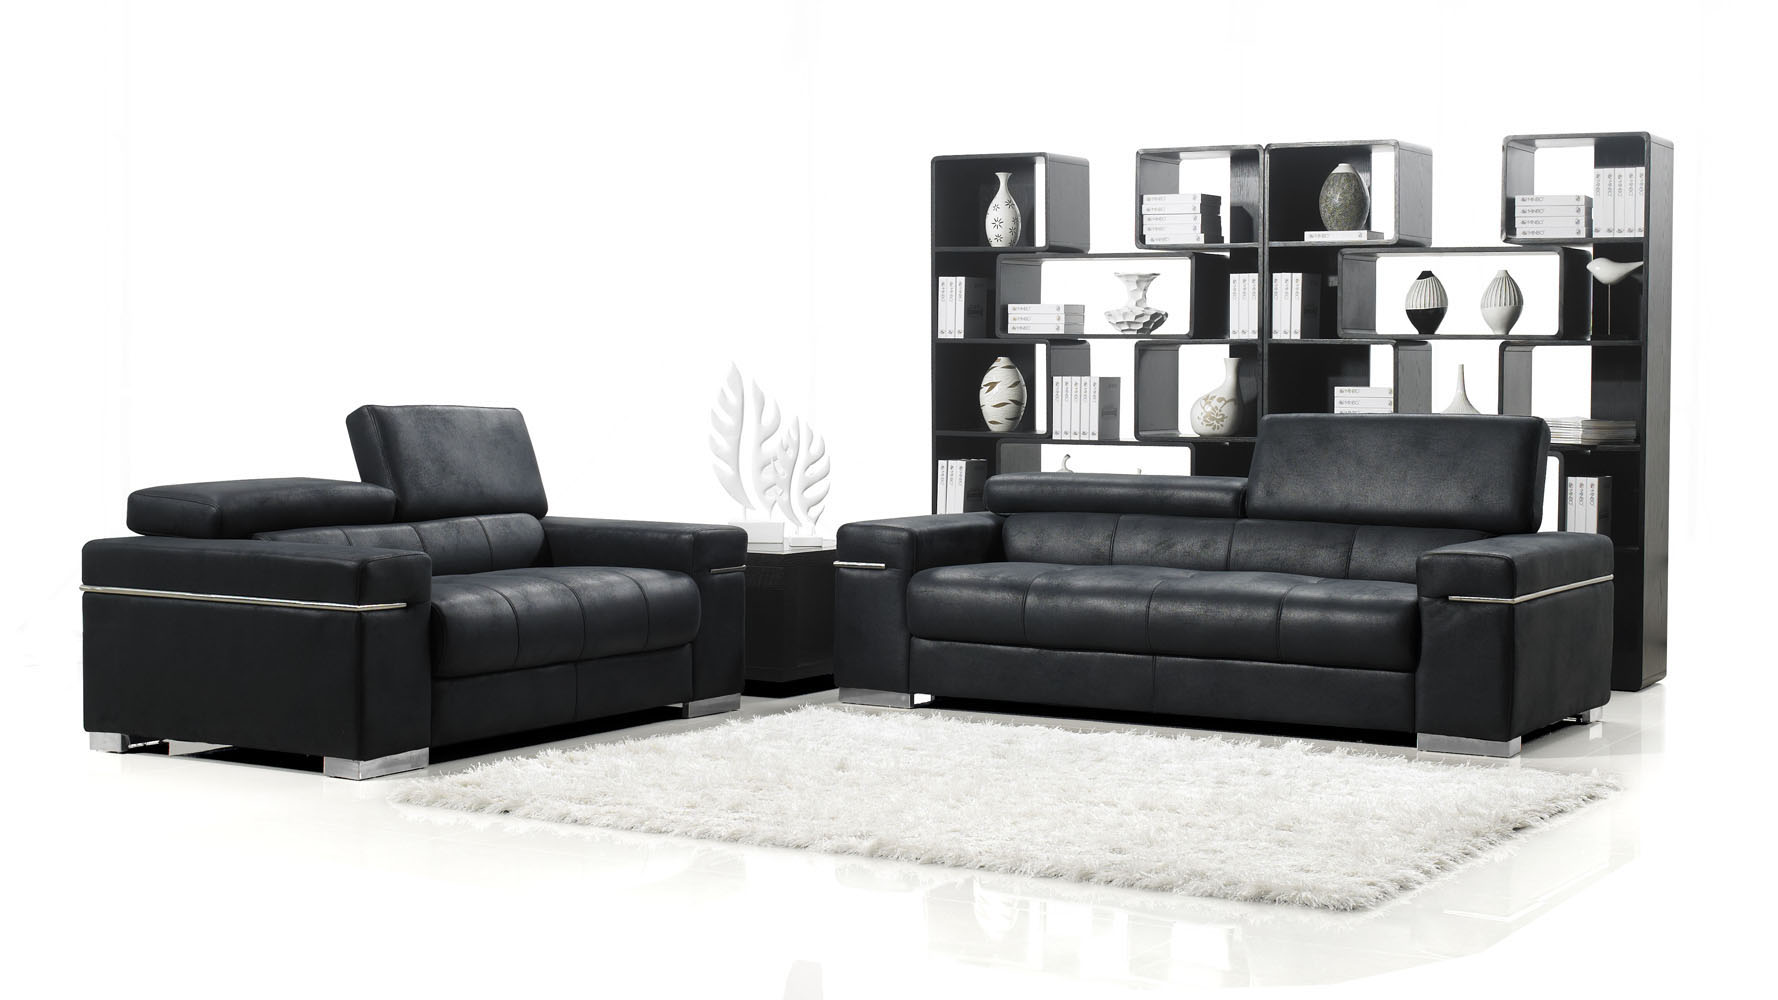 modern sofas & contemporary sofas : modern living room furniture